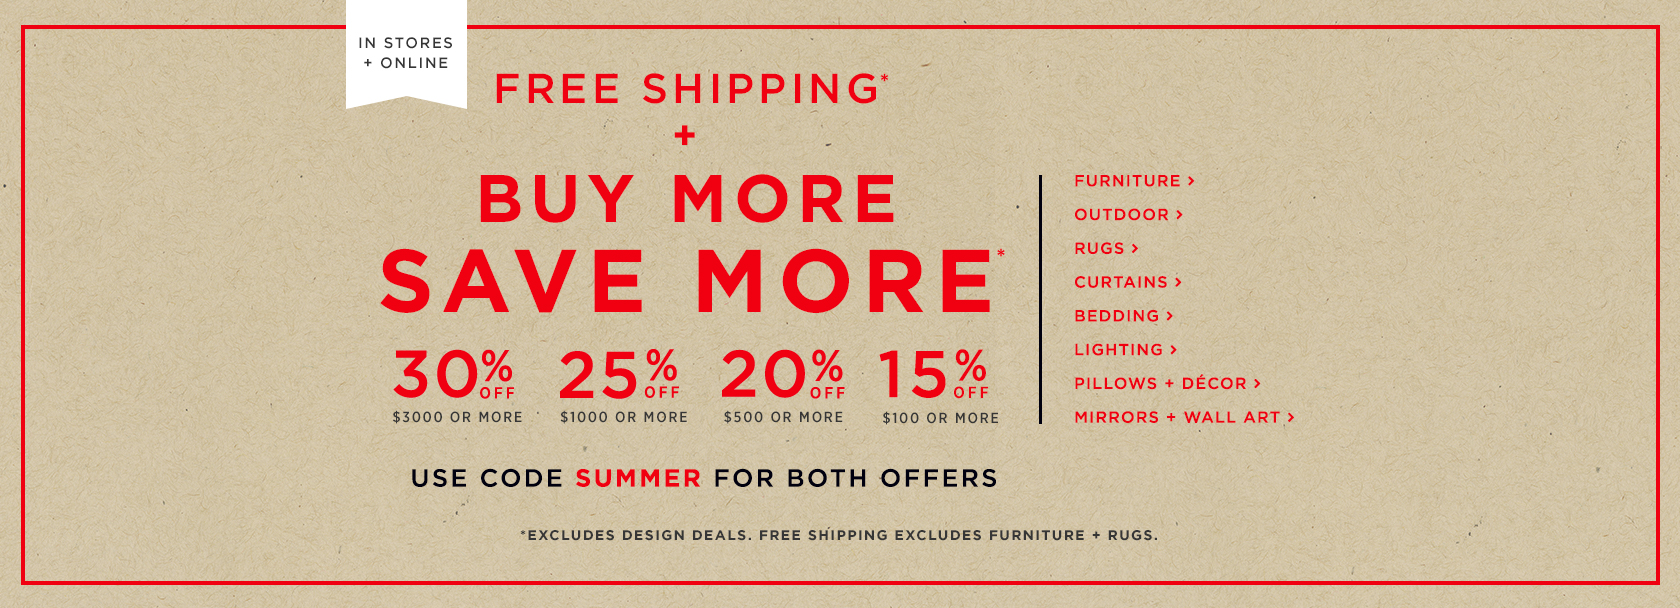 Buy More Save More! Up To 30% Off + Free Shipping. Use Code SUMMER for both offers